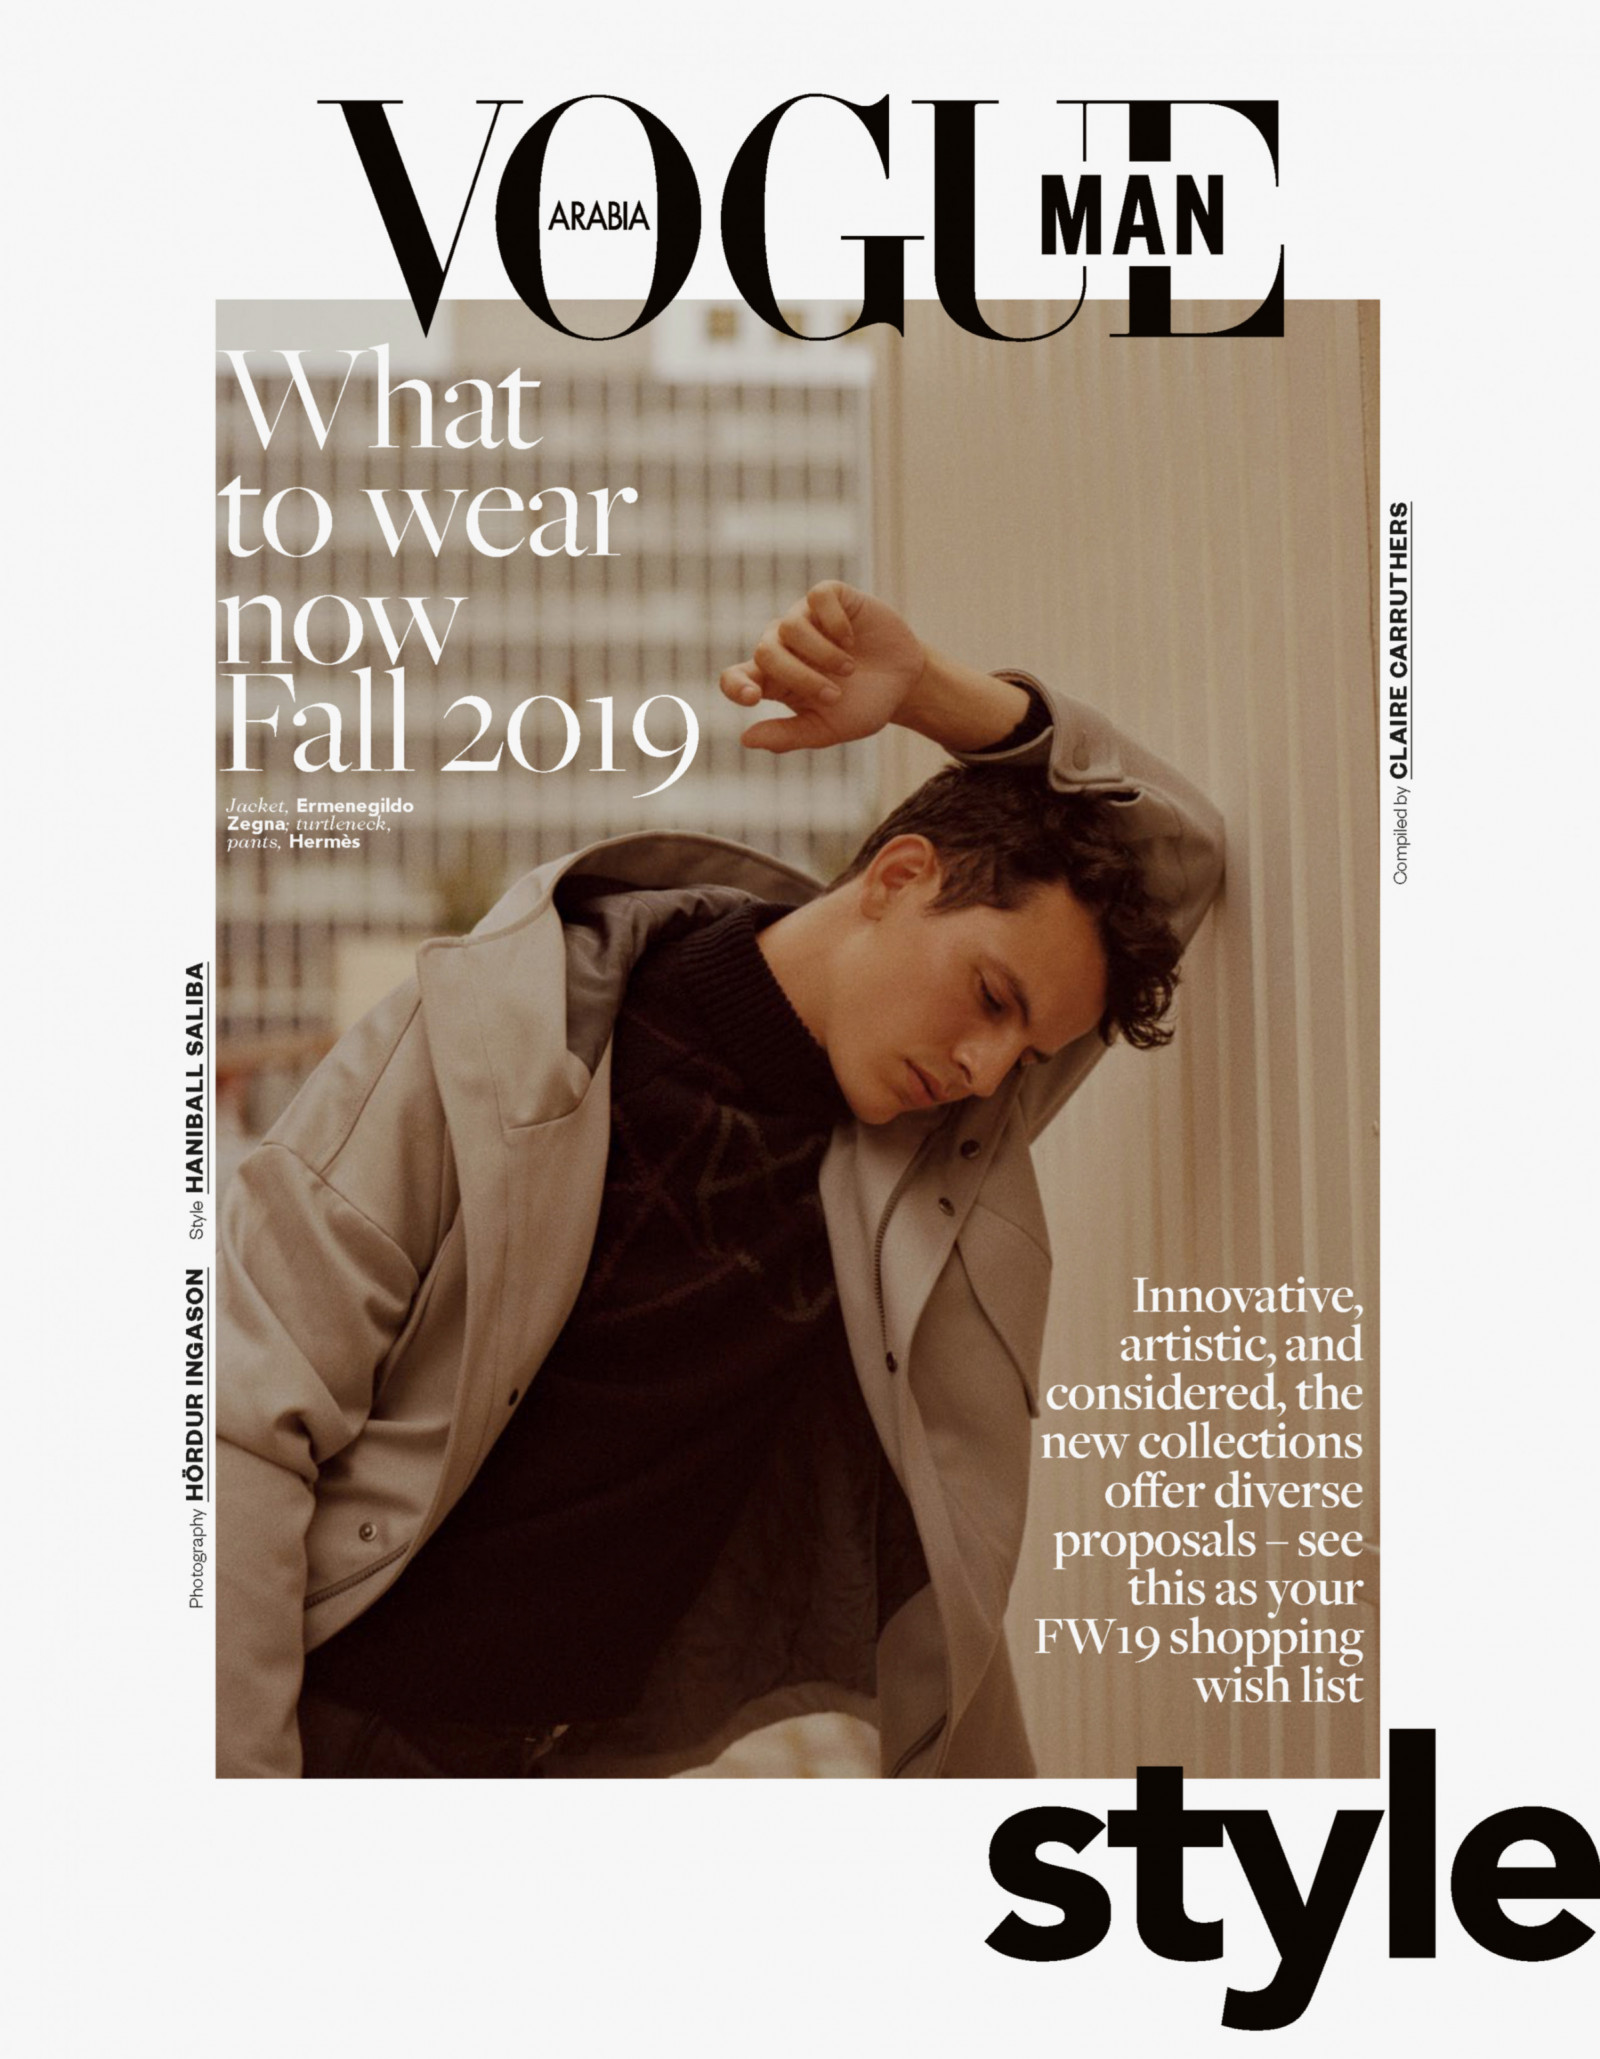 VOGUE Arabia Men